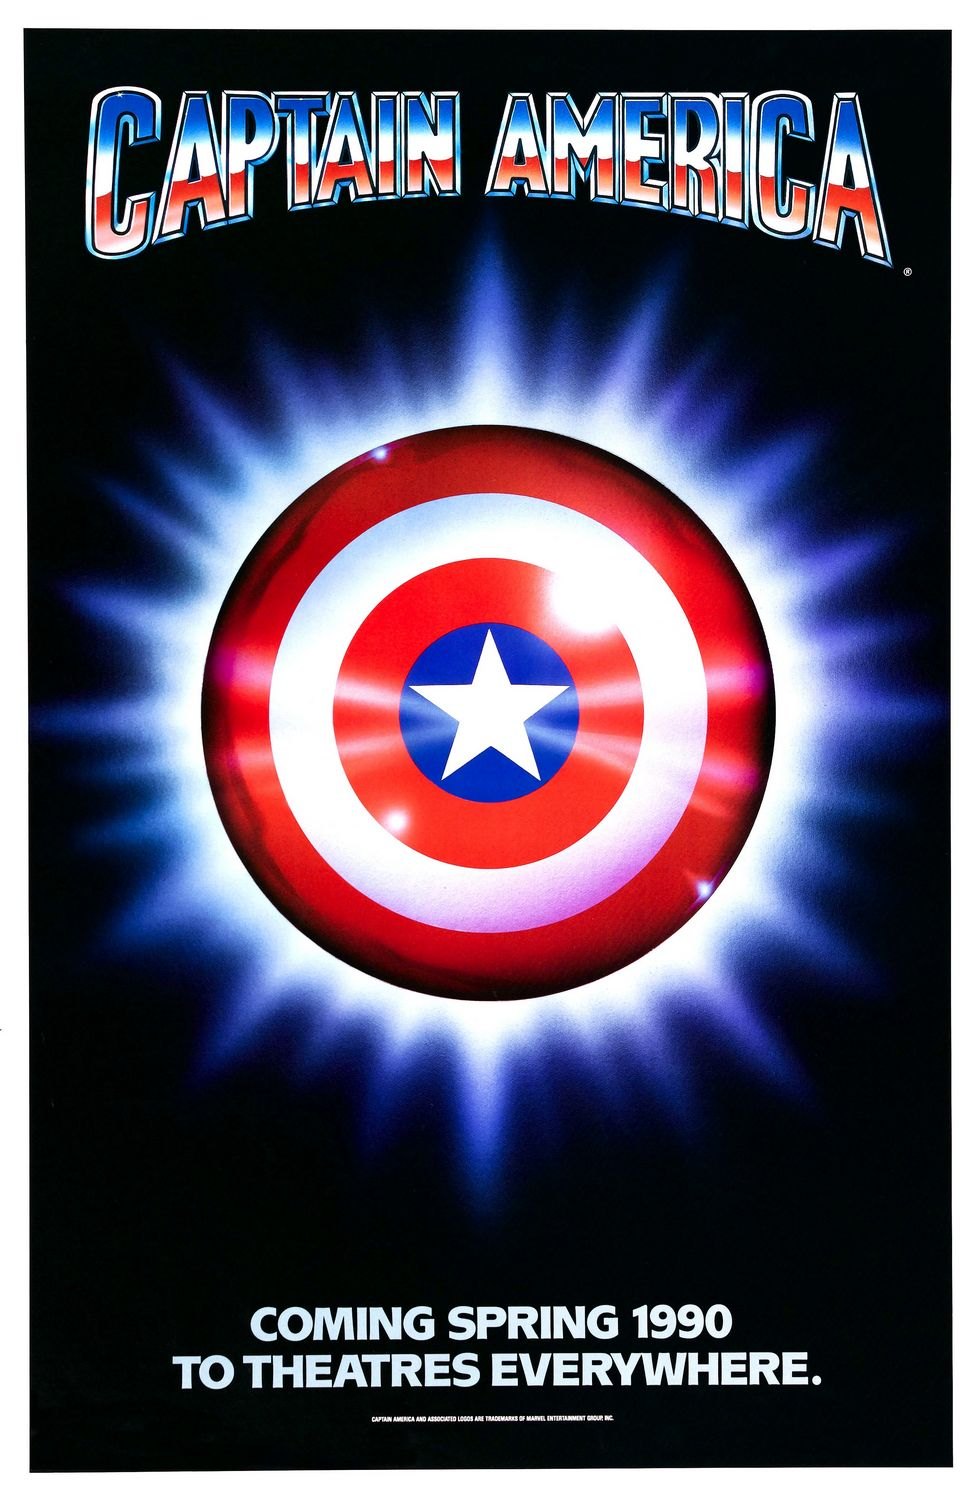 Captain America - old film 1990 - logo poster